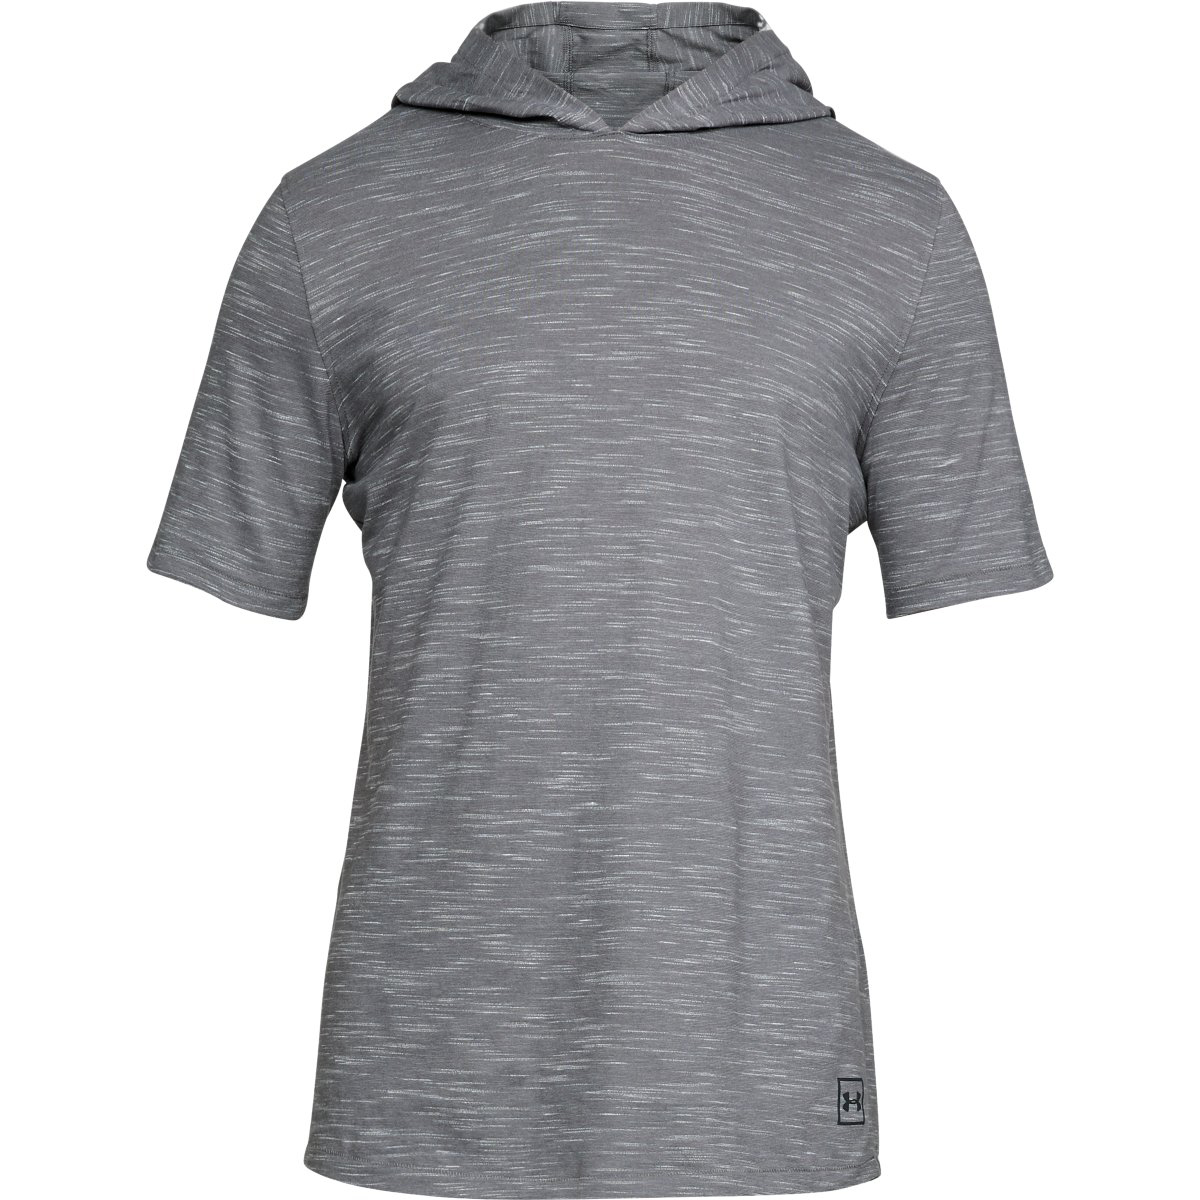 Under Armour Men's Ua Sportstyle Core Short-Sleeve Pullover Hoodie - Black, L